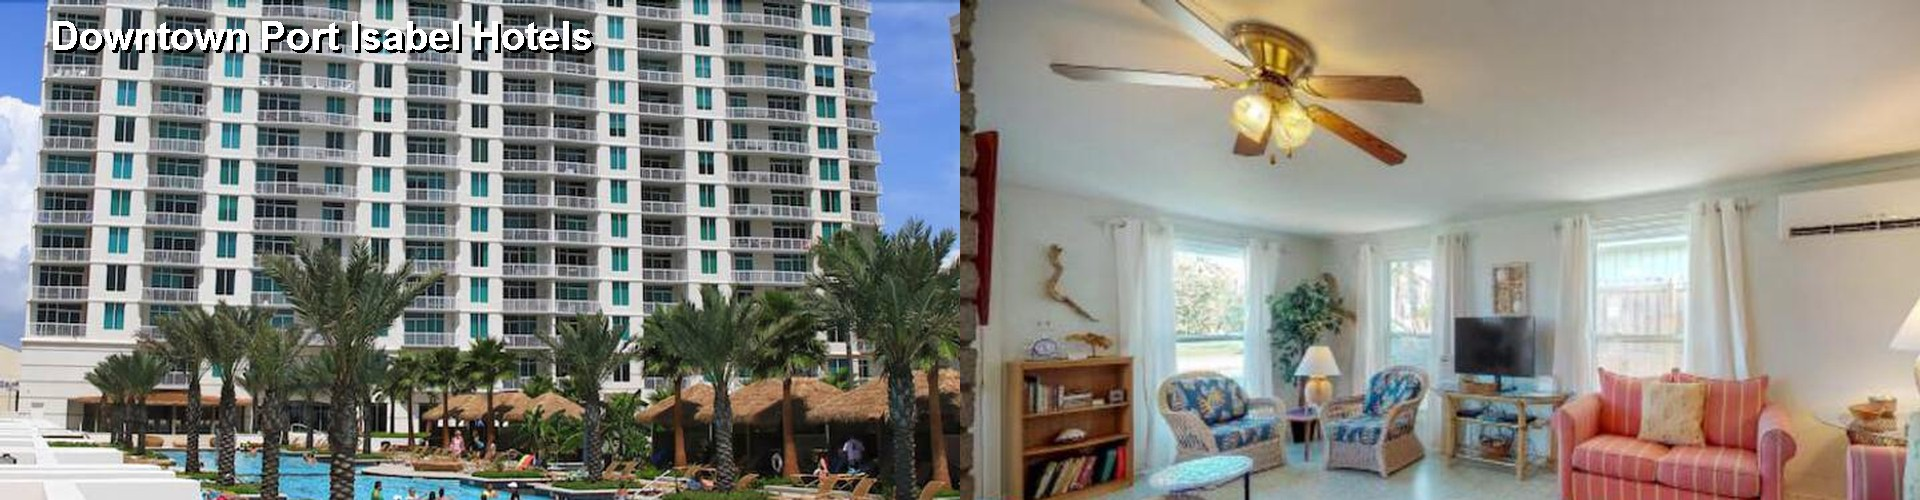 5 Best Hotels near Downtown Port Isabel